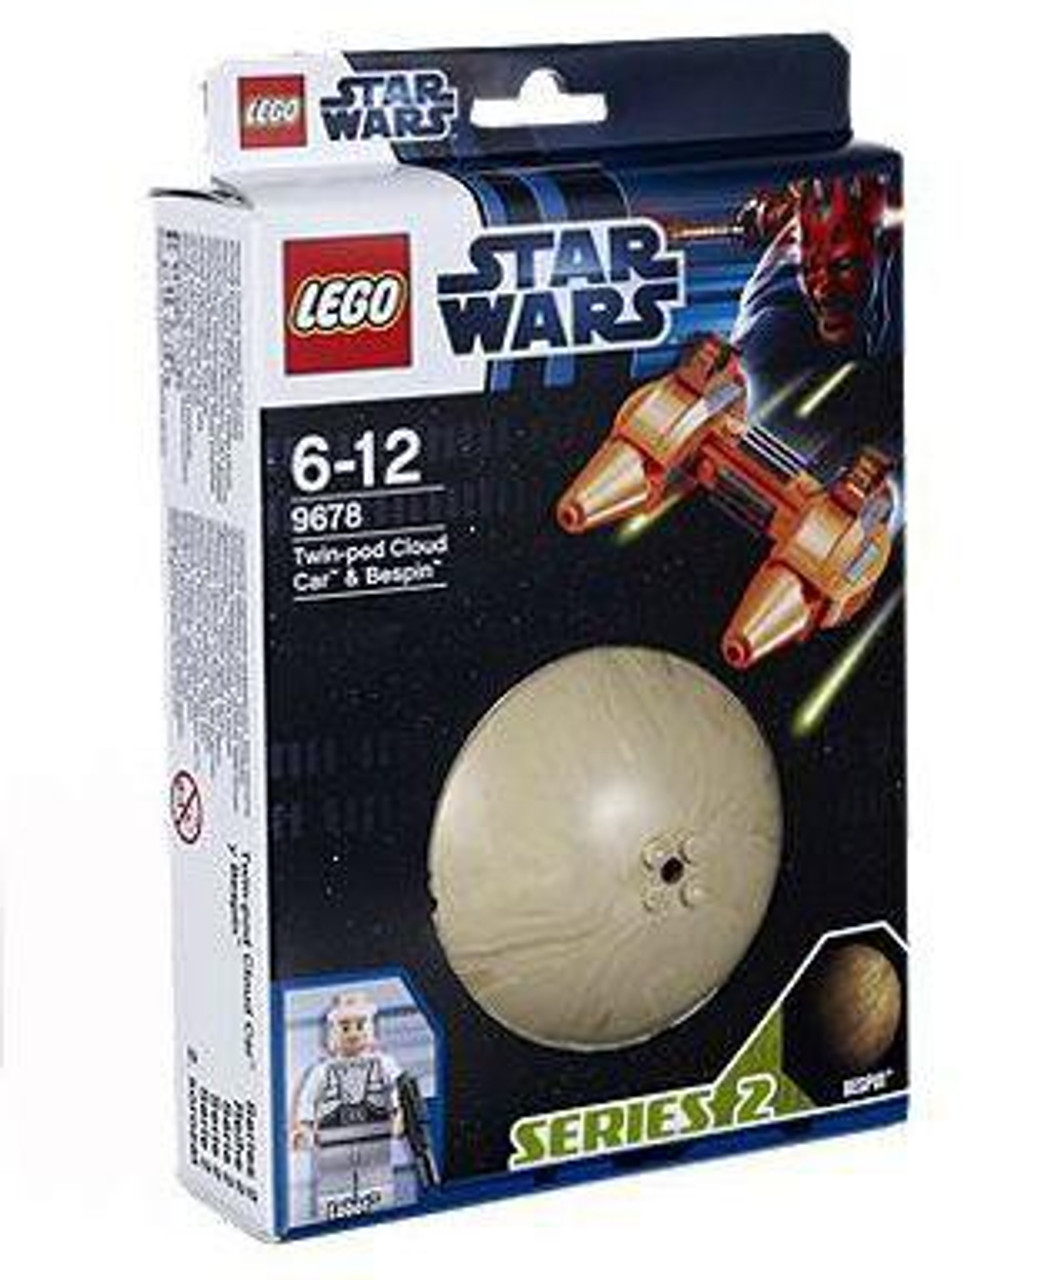 LEGO Star Wars Empire Strikes Back Planets Series 2 Twin-Pod Cloud Car & Bespin Set #9678